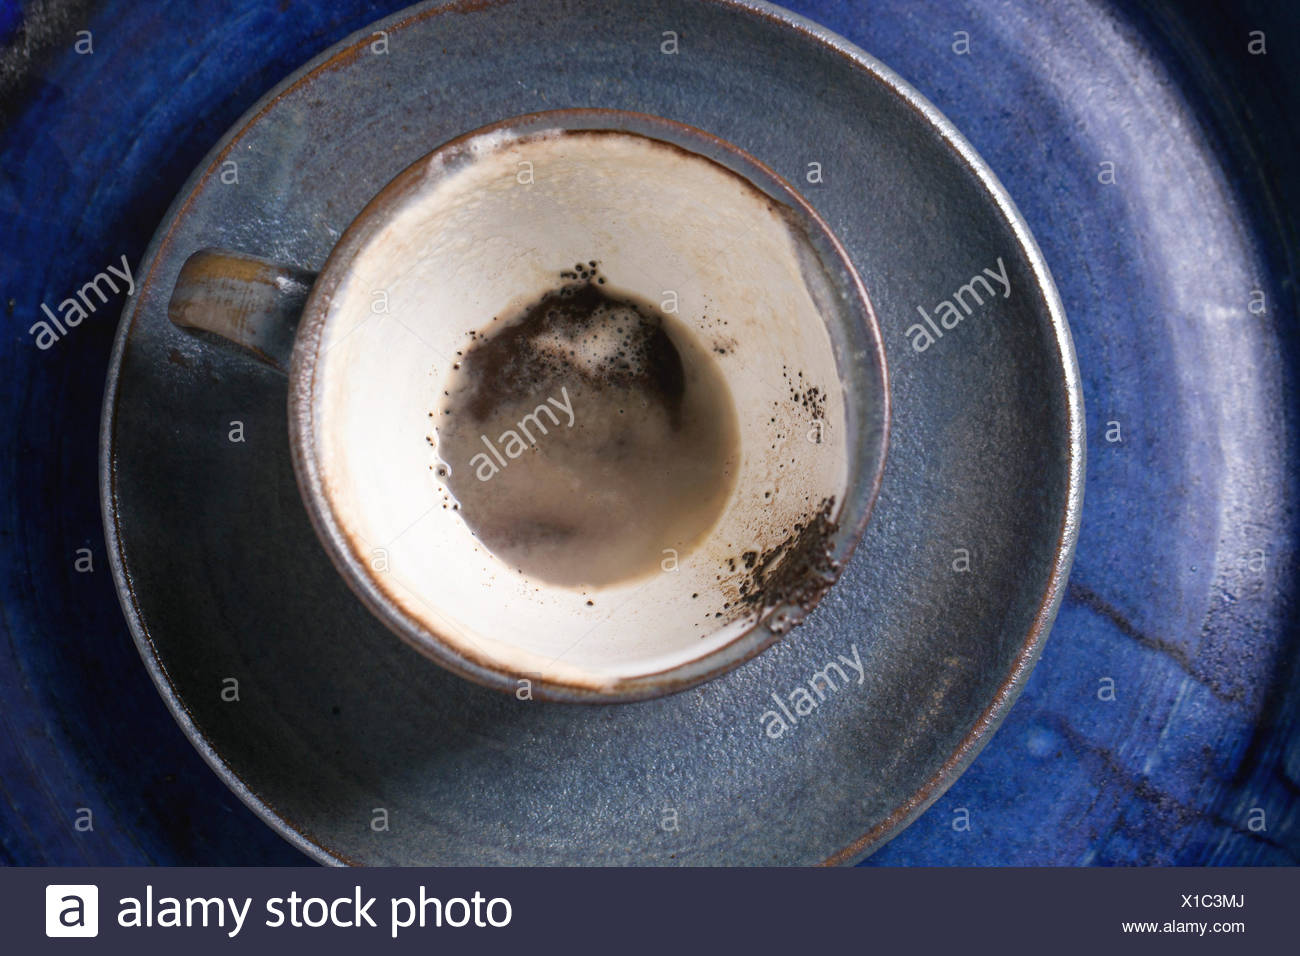 Blue ceramic cup of coffee grounds over blue ceramic tray. Top view. - Stock Image